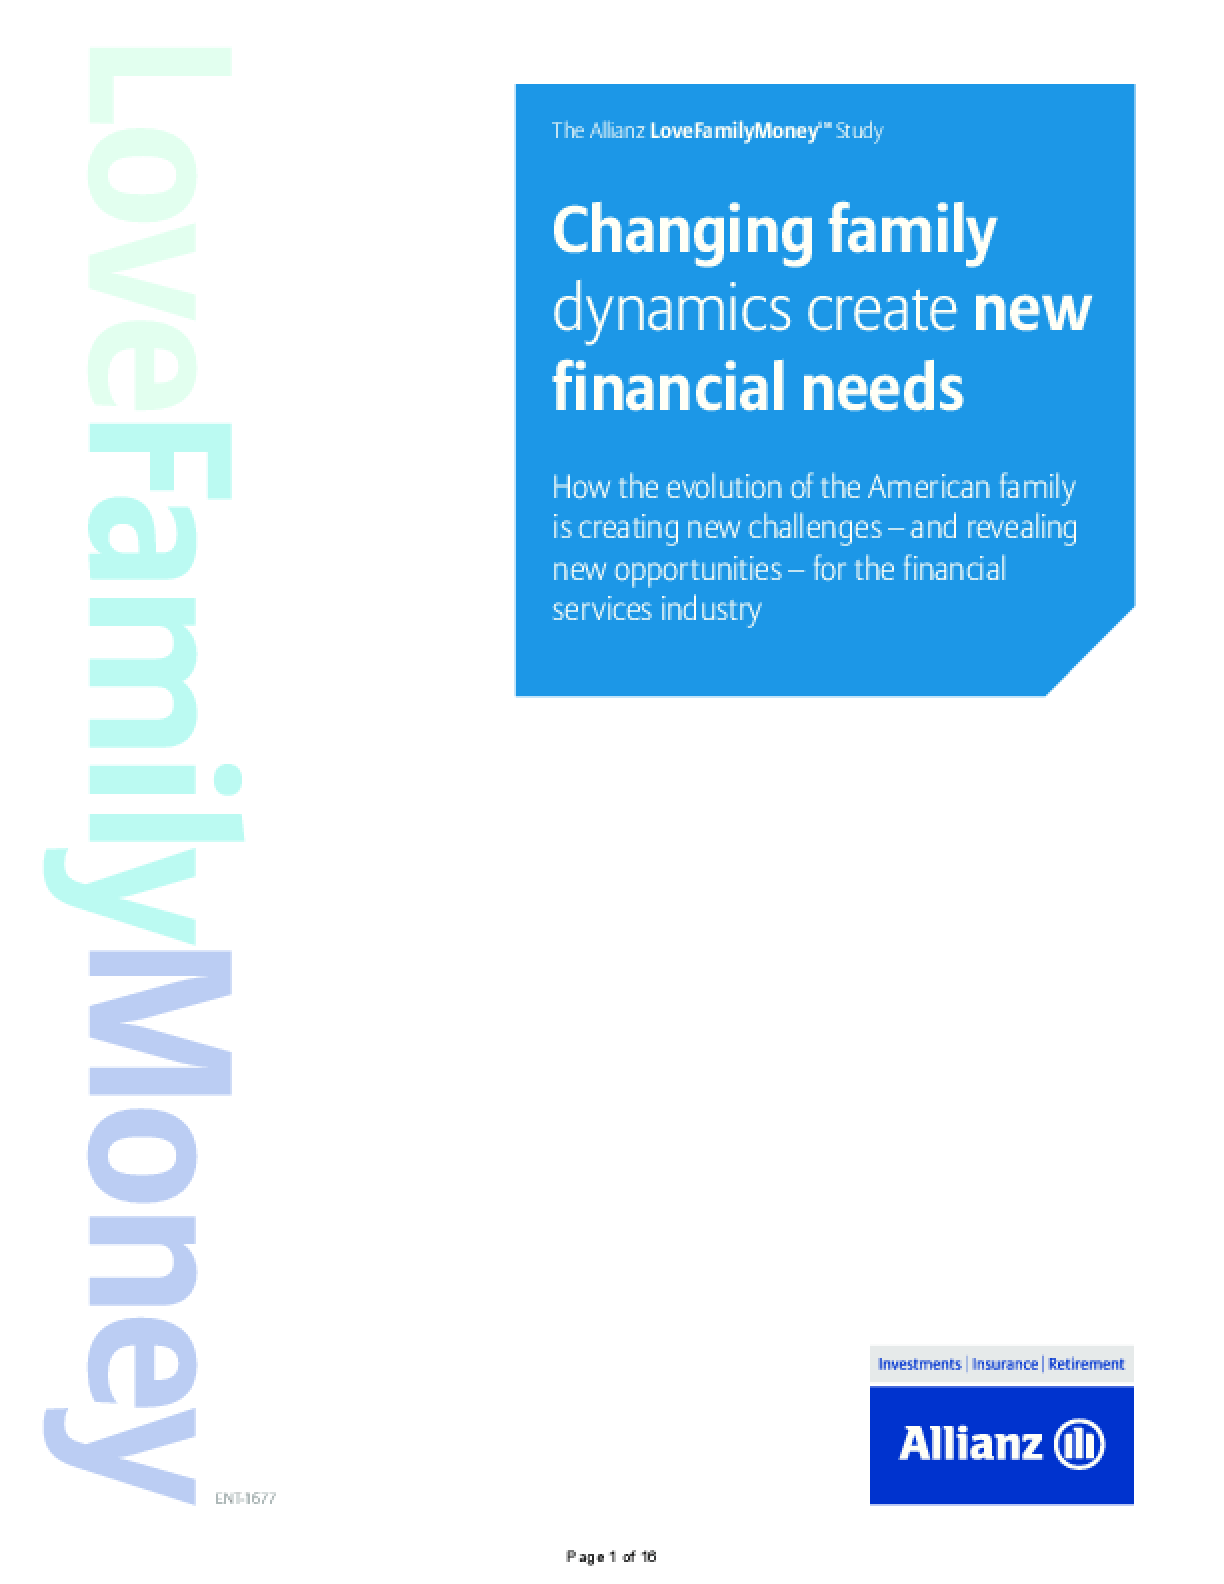 Changing Family Dynamics Create New Financial Needs: How the Evolution of the American Family is Creating New Challenges - and Revealing New Opportunities - for the Financial Services Industry